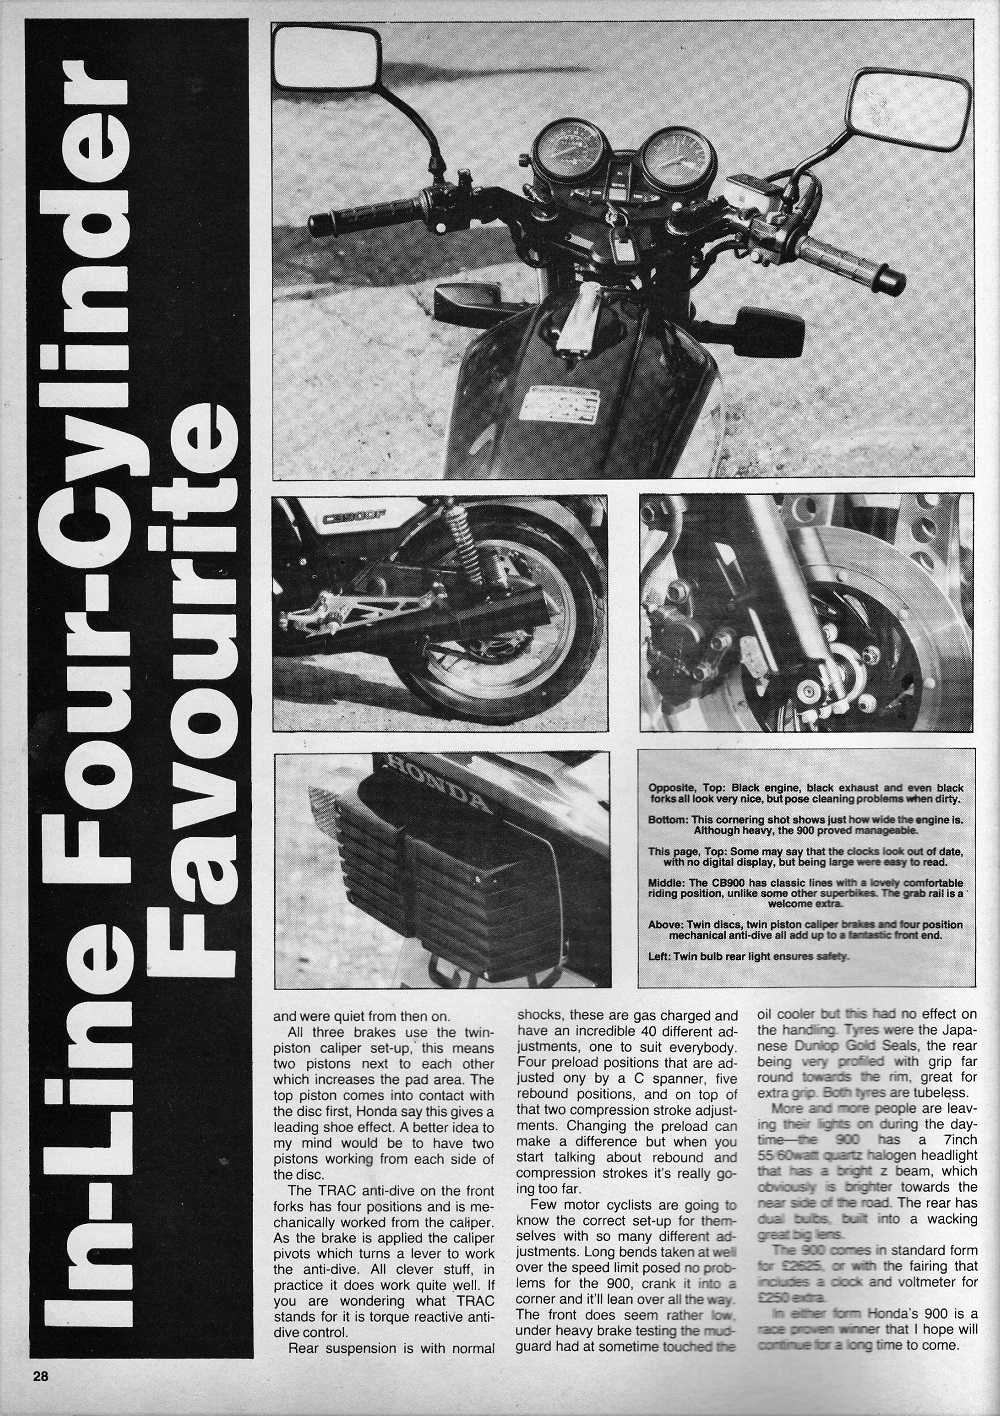 1983 Honda CB900F-D road test.3.jpg